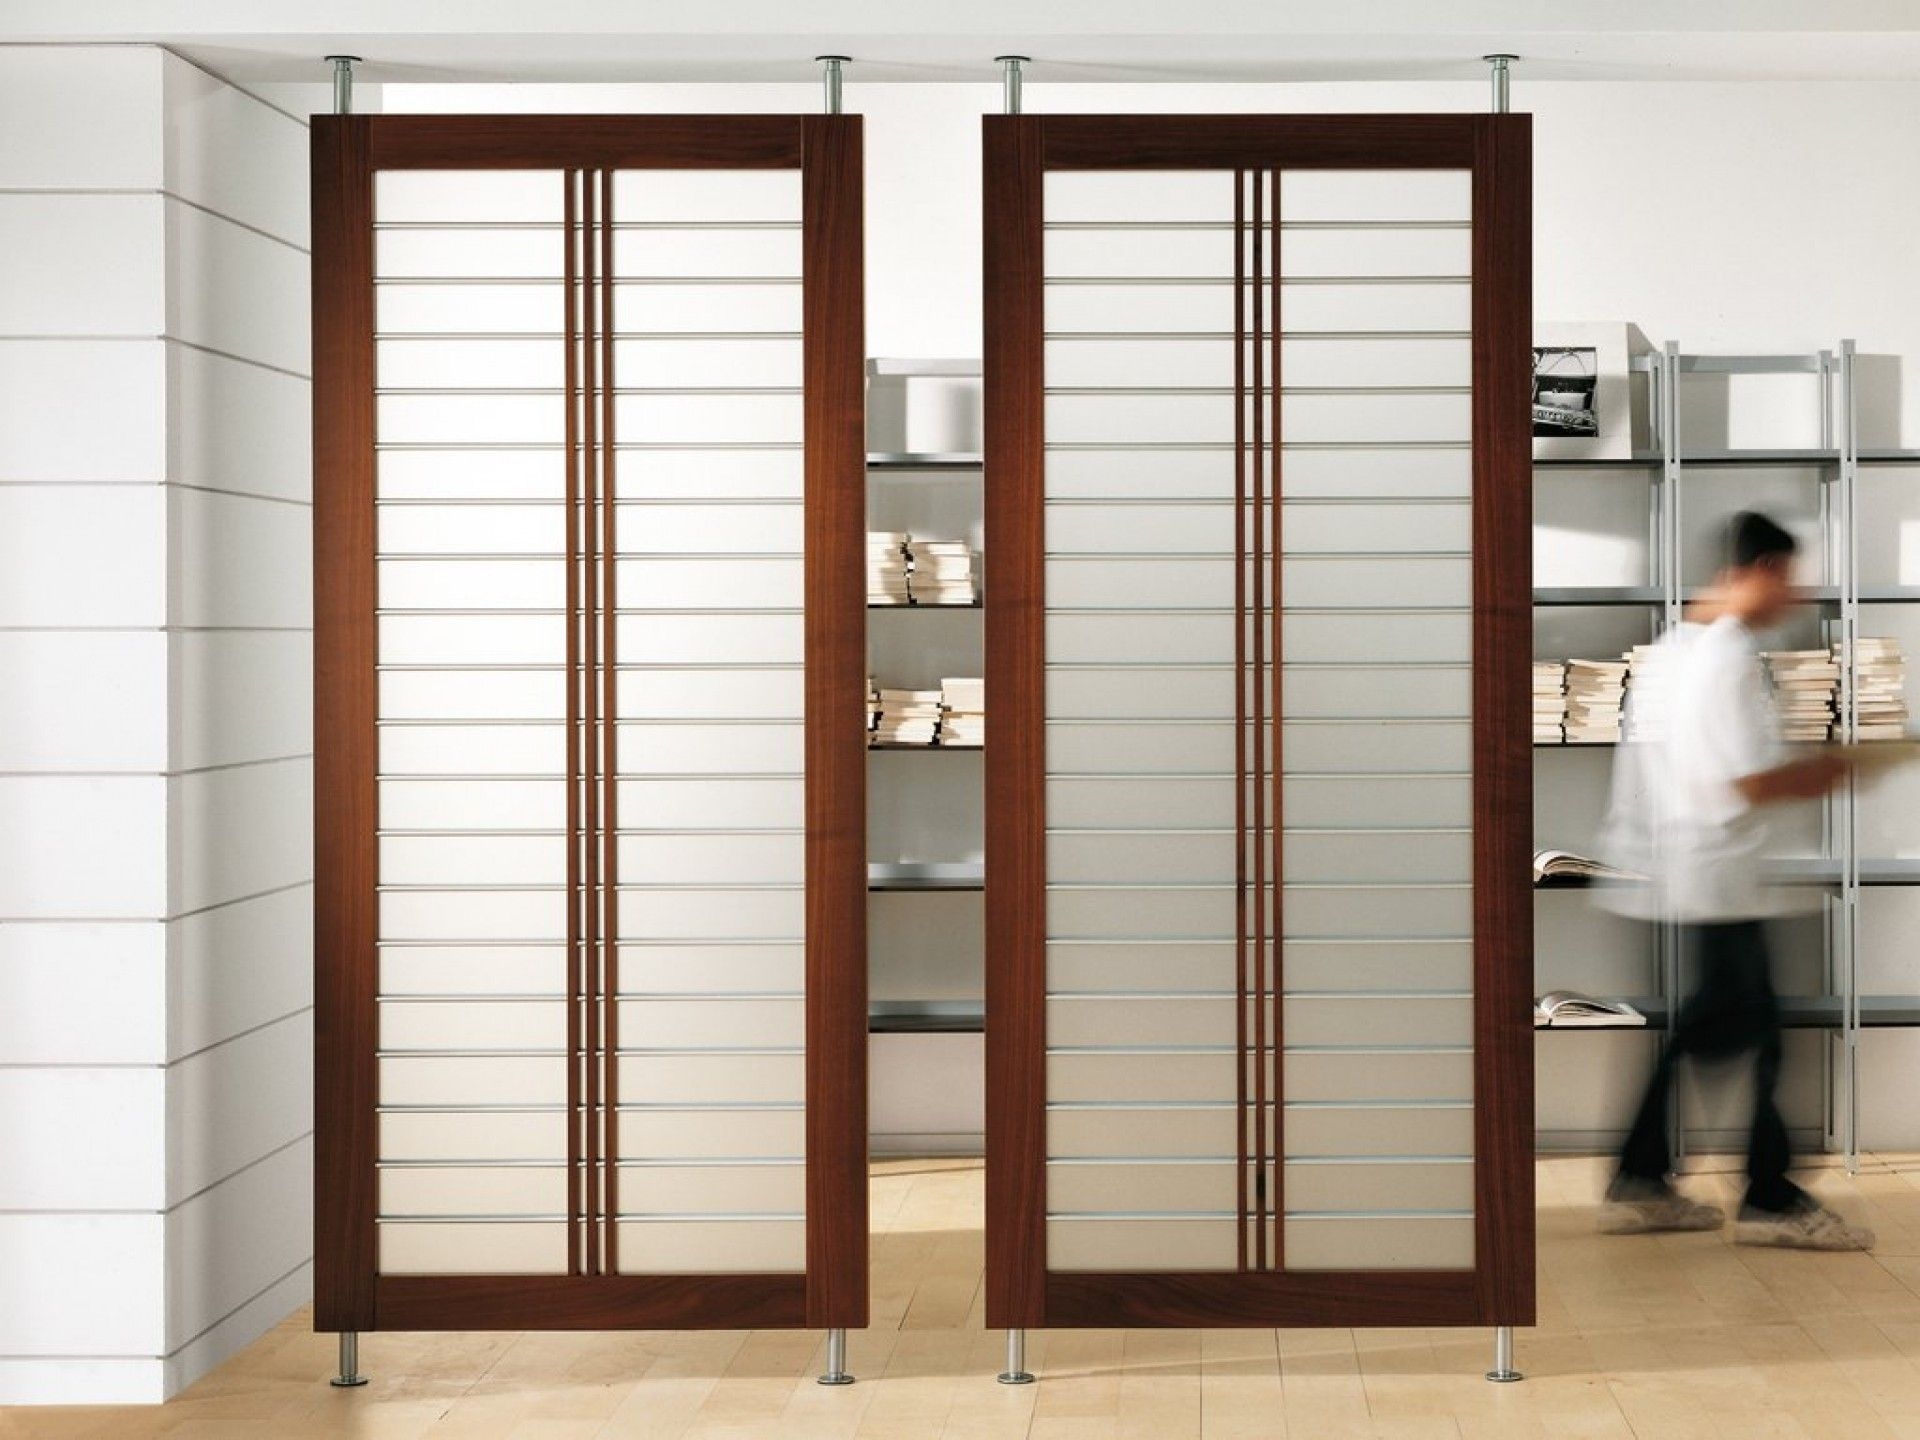 Sliding Room Dividers Create Your Home More Stylish: Glass Room Dividers  For Room Separators And Sliding Room Dividers With Wall Paneling Also Wood  Flooring ...